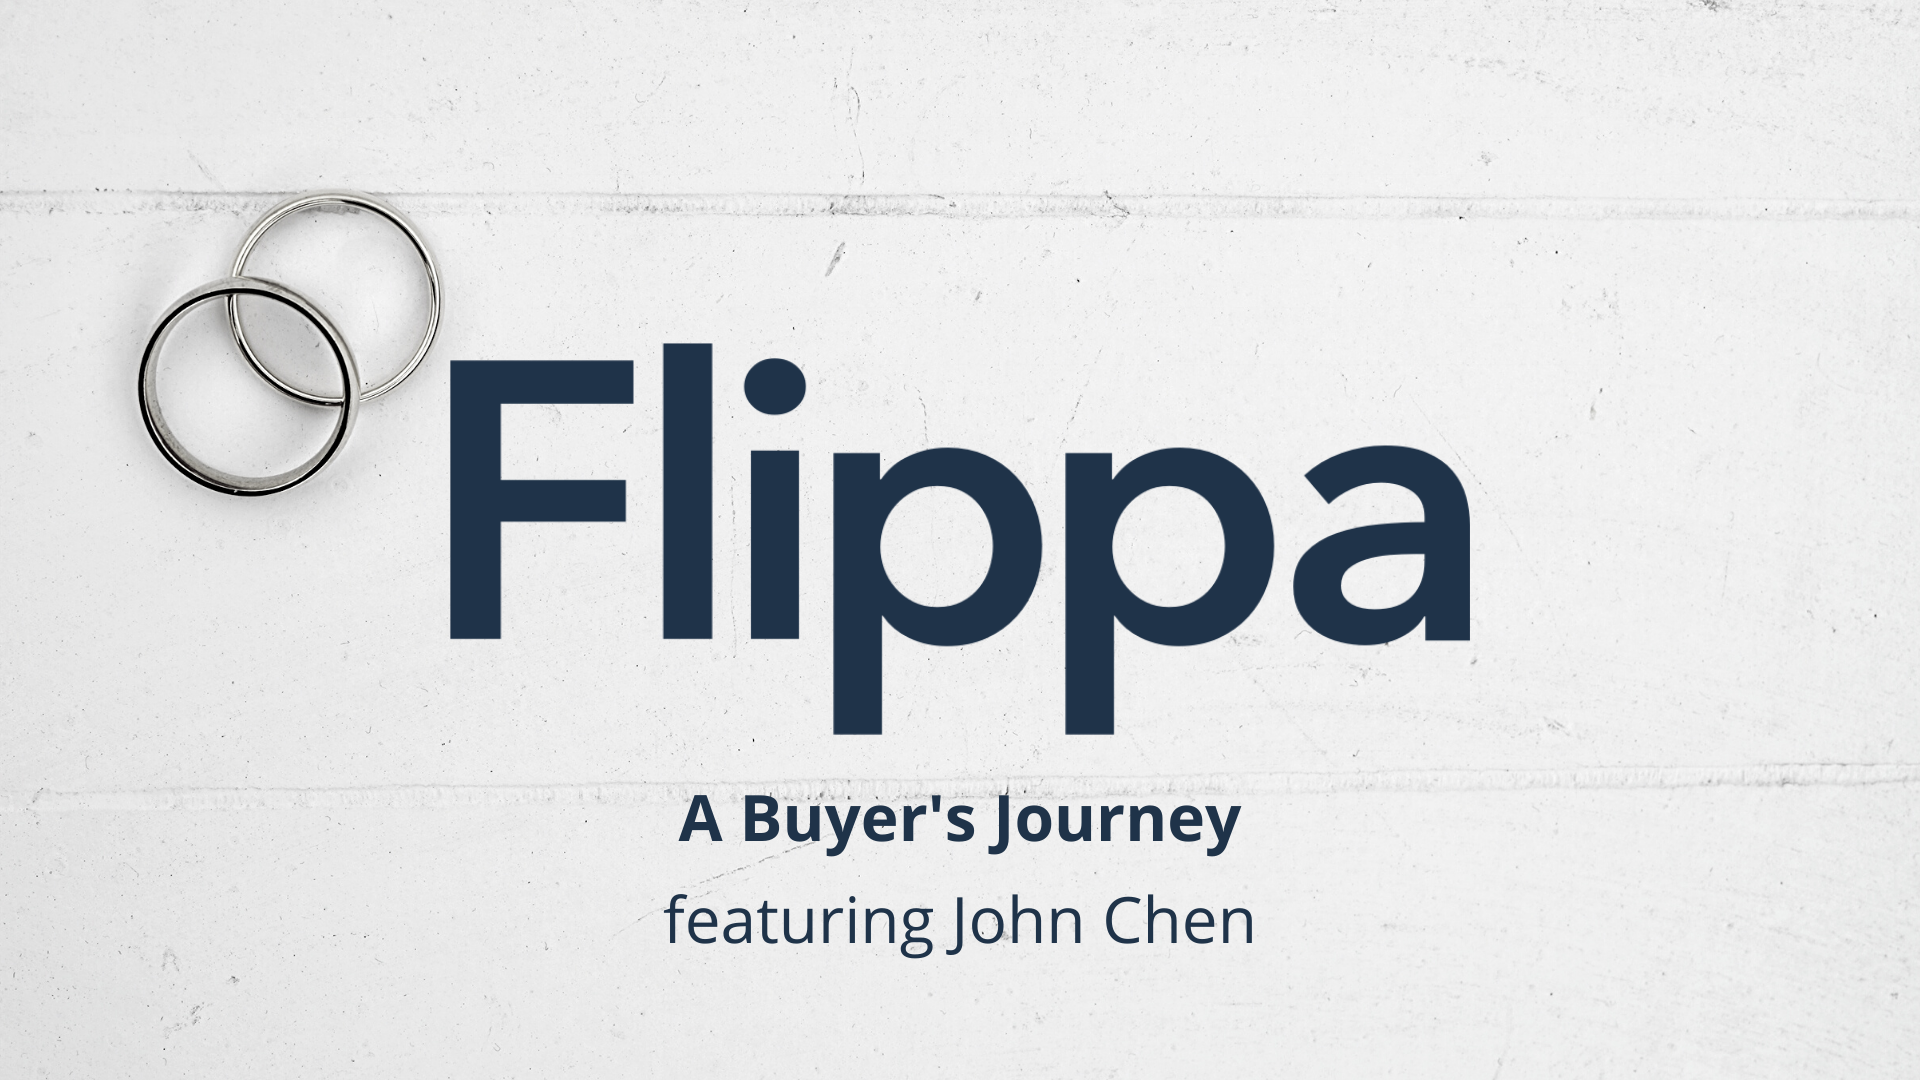 The Flippa Buyer's Journey featuring John Chen